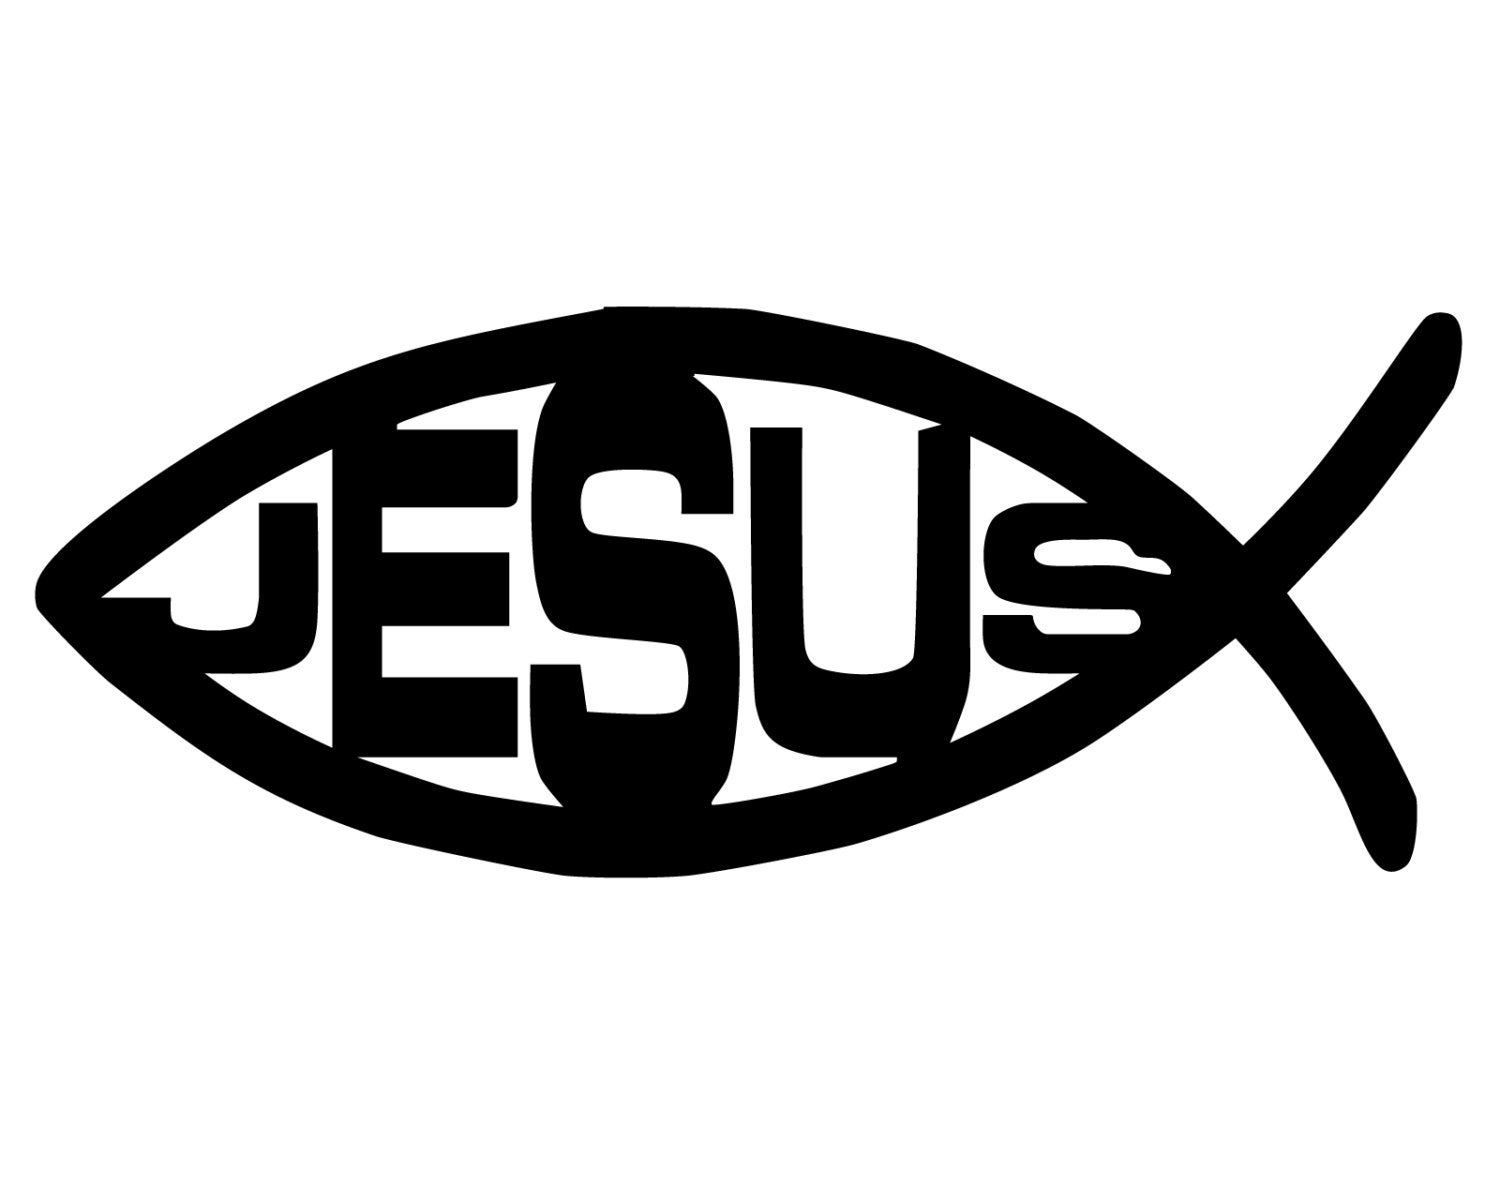 Jesus fish symbol images galleries for Christian fish meaning